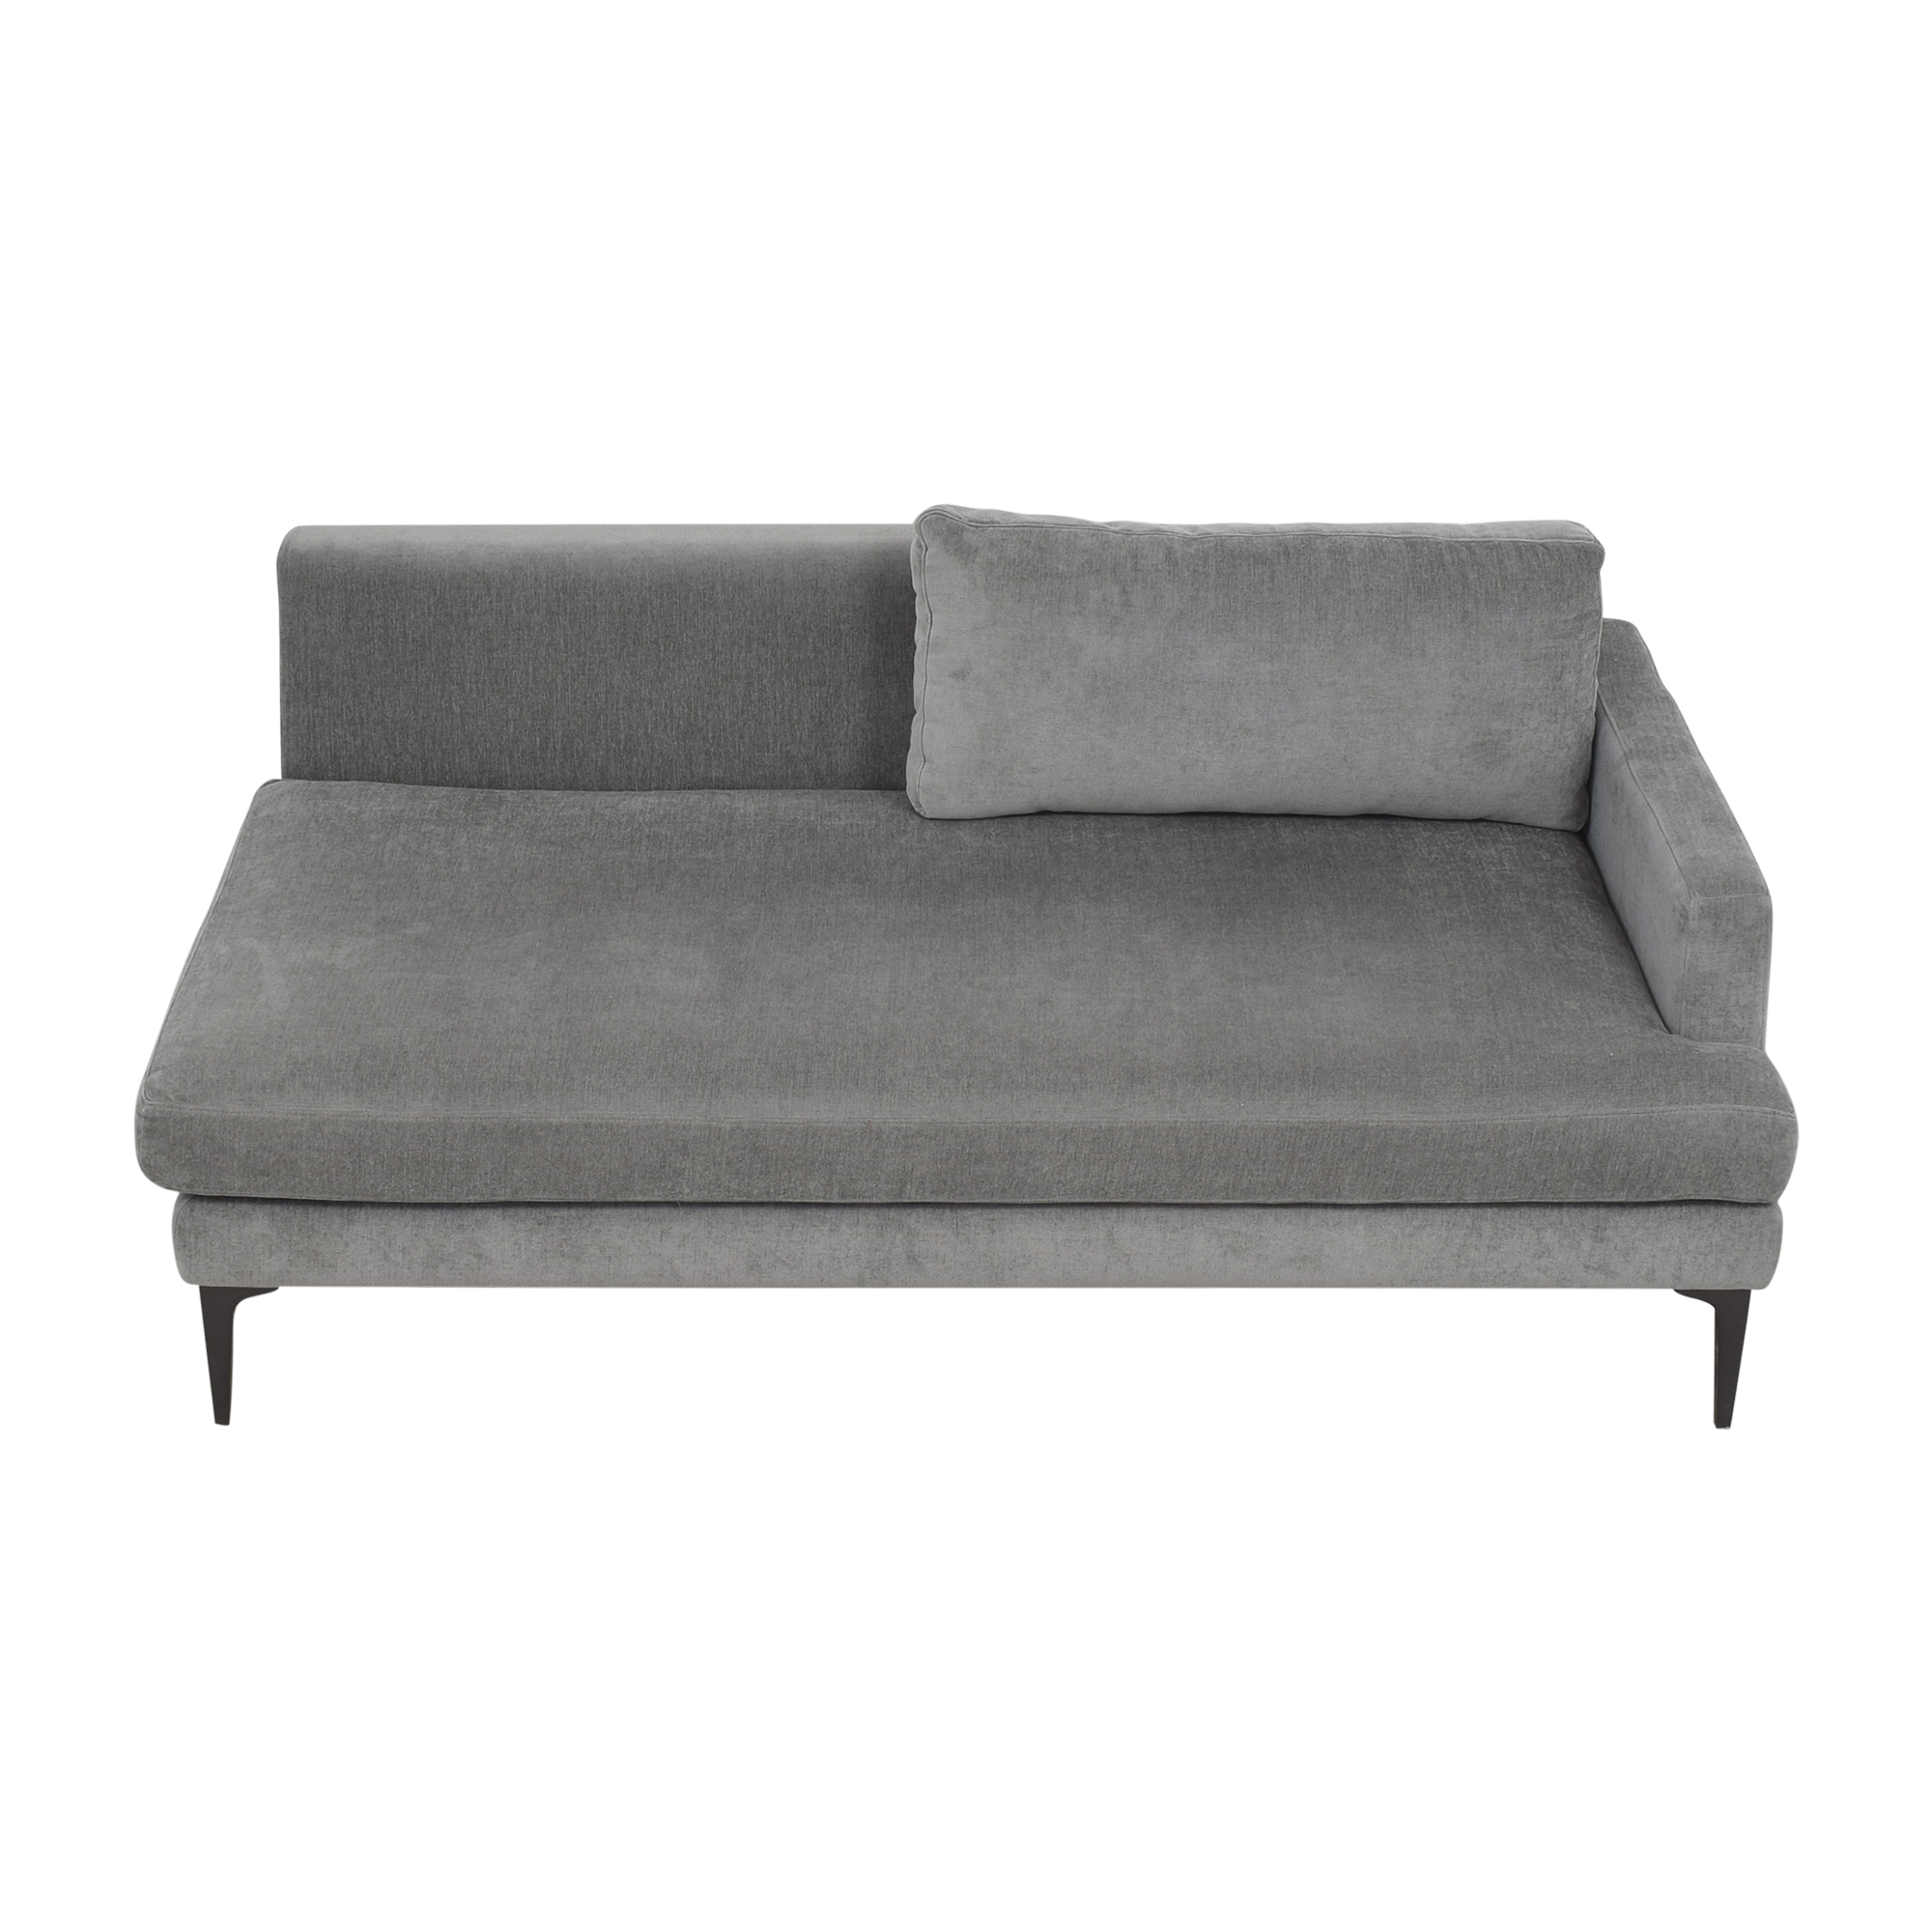 West Elm West Elm Andes Right Arm Sofa price